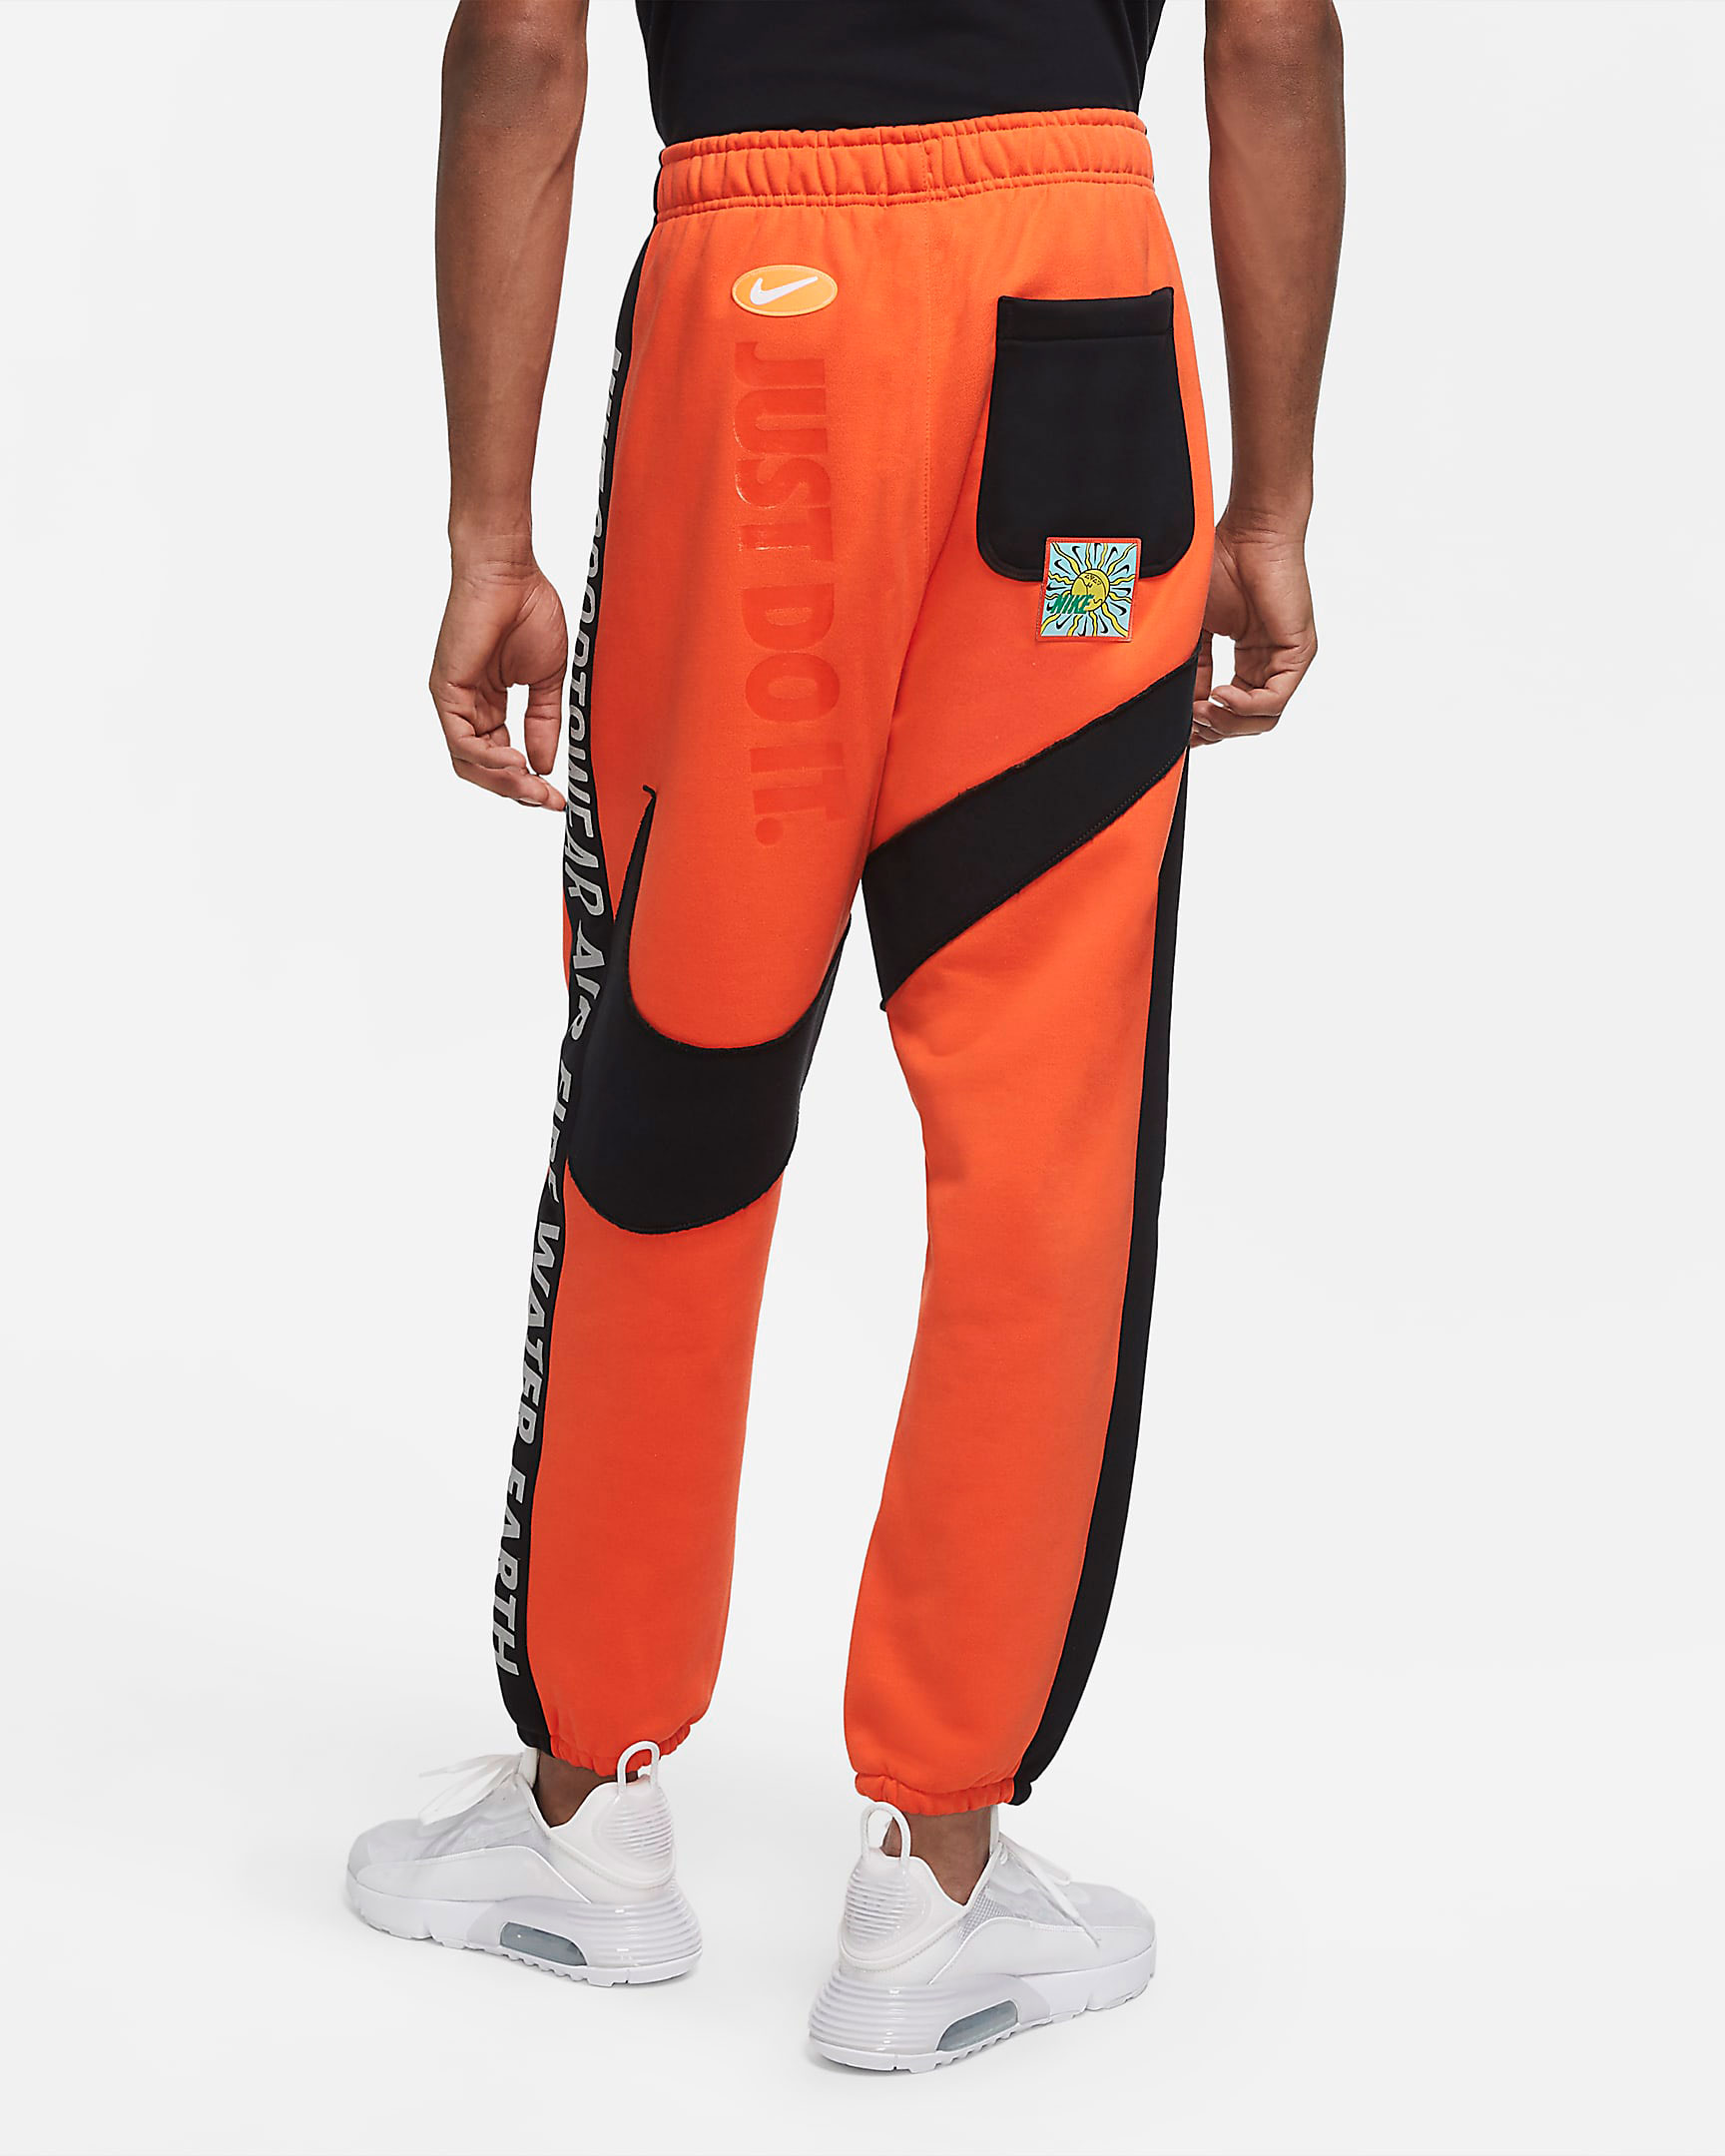 nike-air-max-drip-jogger-pants-orange-2